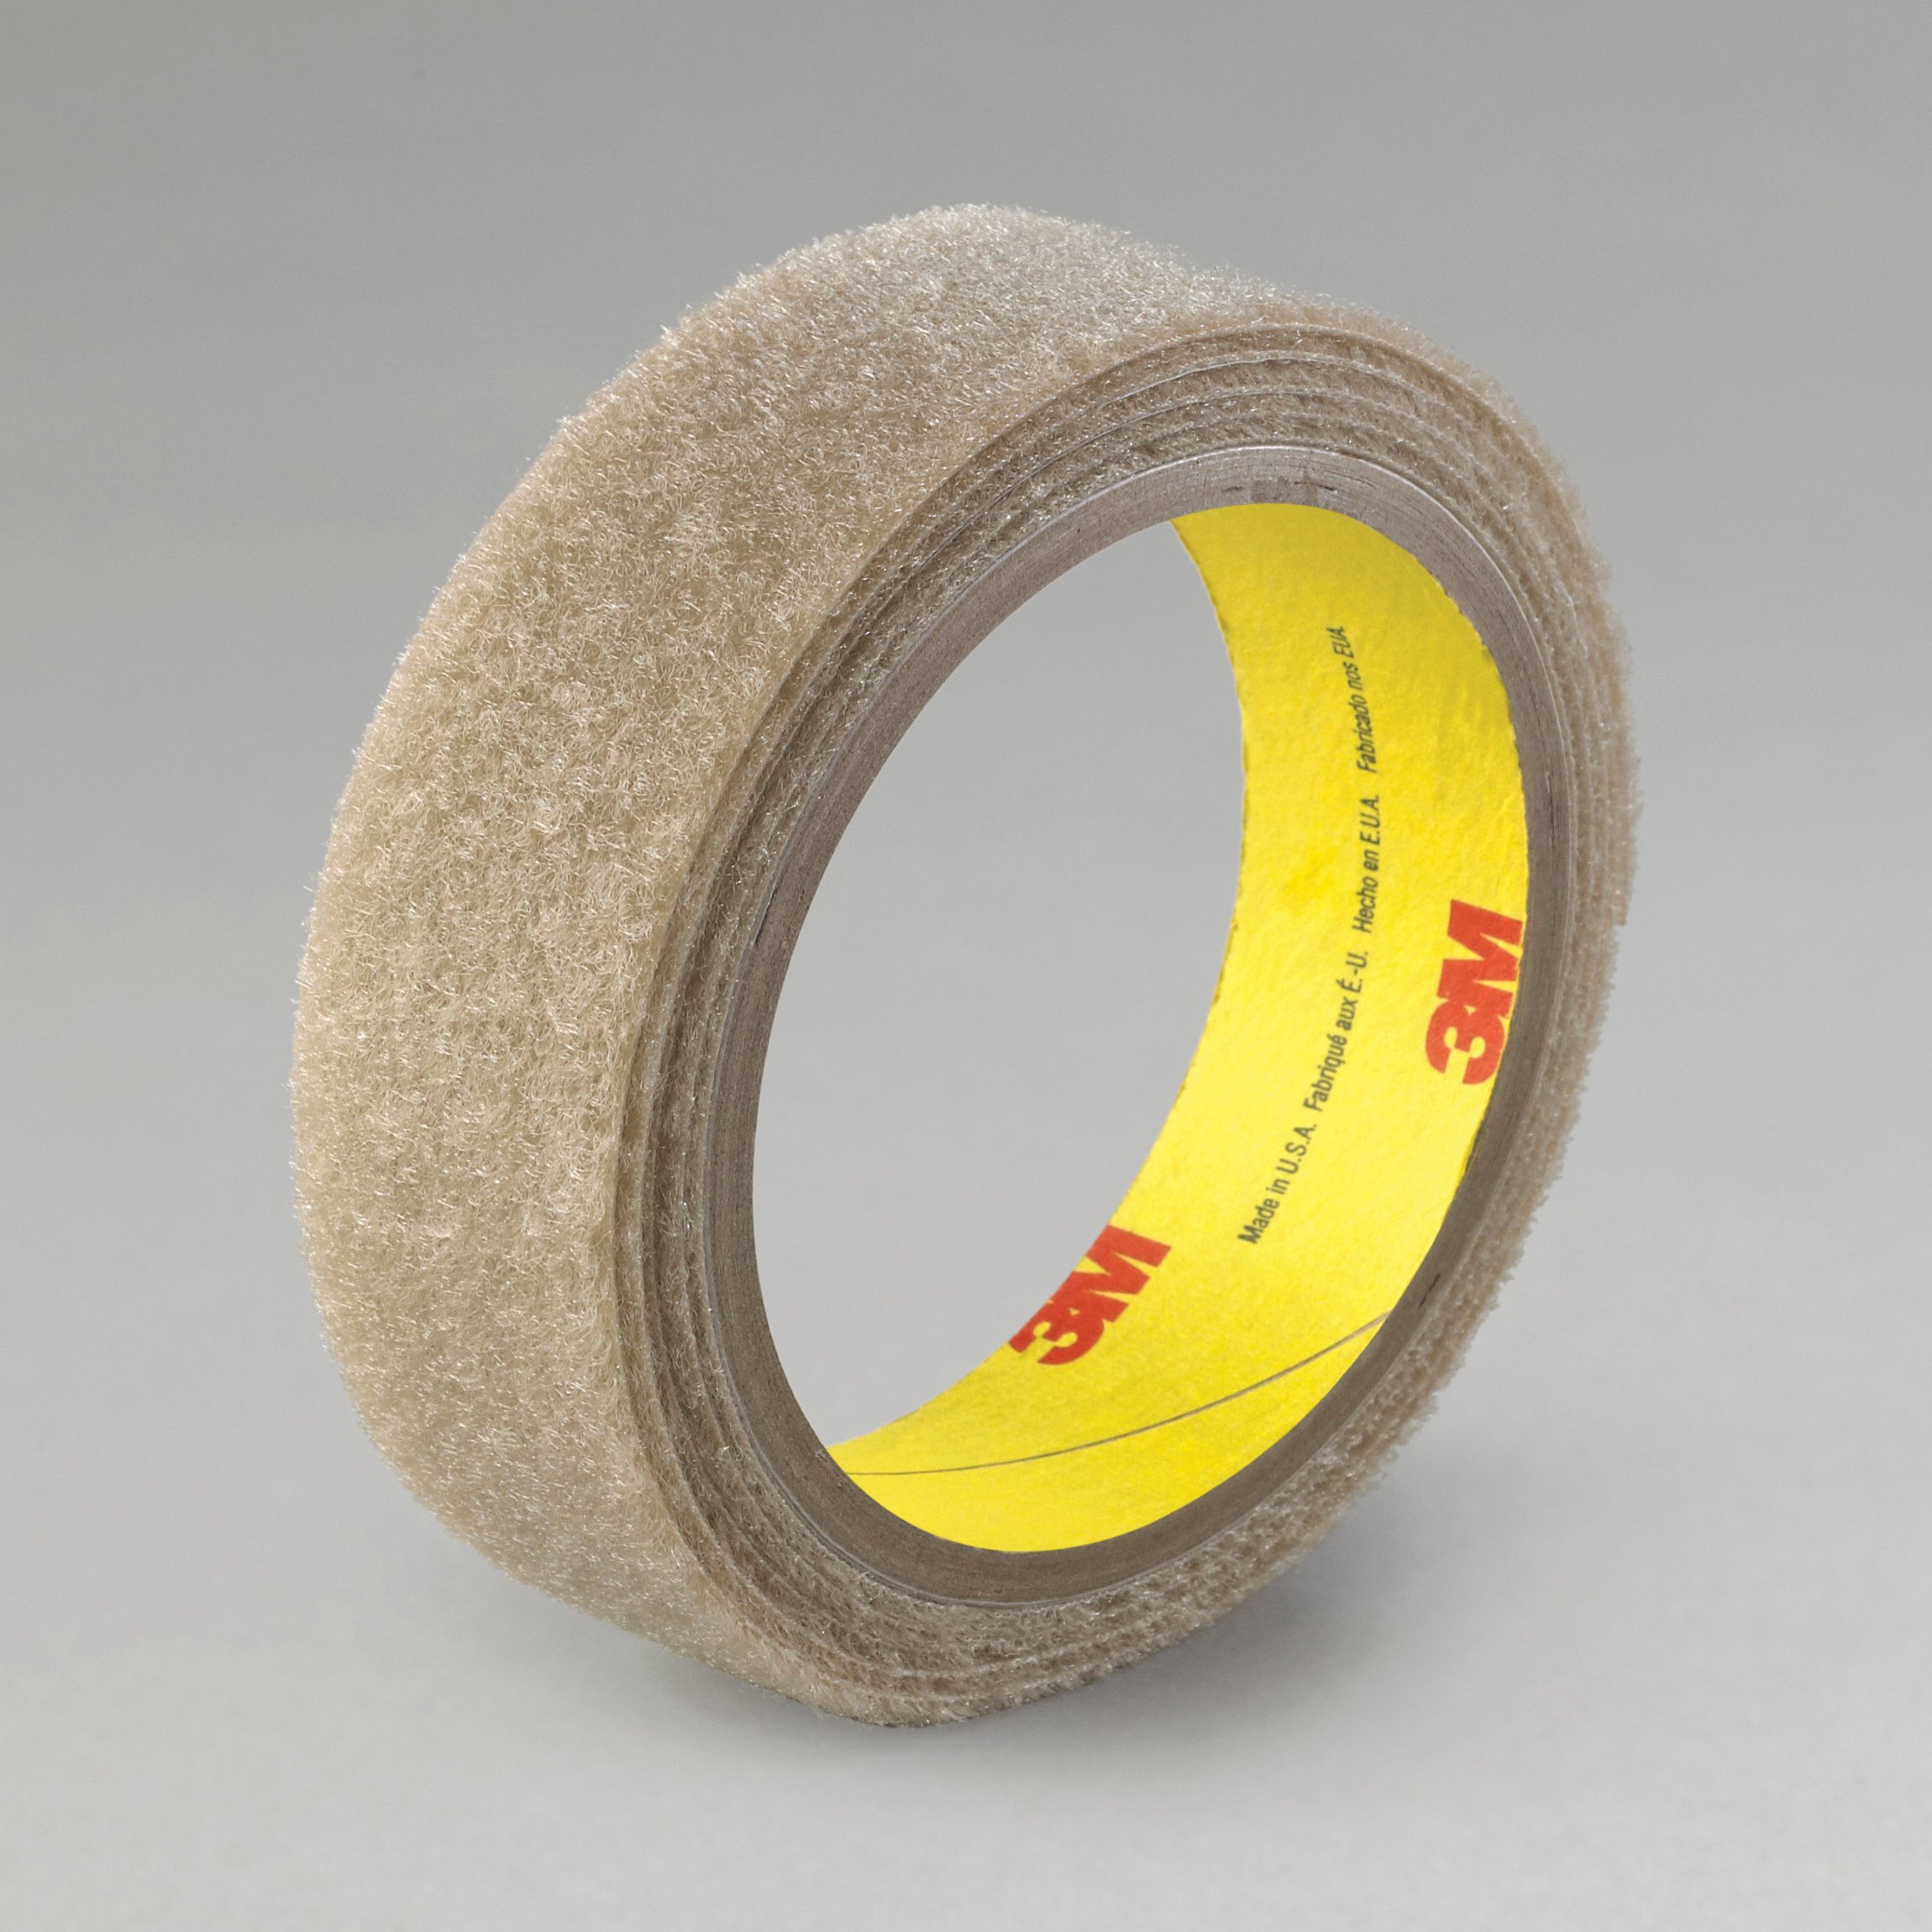 3M™ 021200-23184 Reclosable Hook Fastener Tape, 50 yd L x 2 in W, 0.15 in THK Engaged, Synthetic Rubber Adhesive, Woven Nylon Backing, Beige